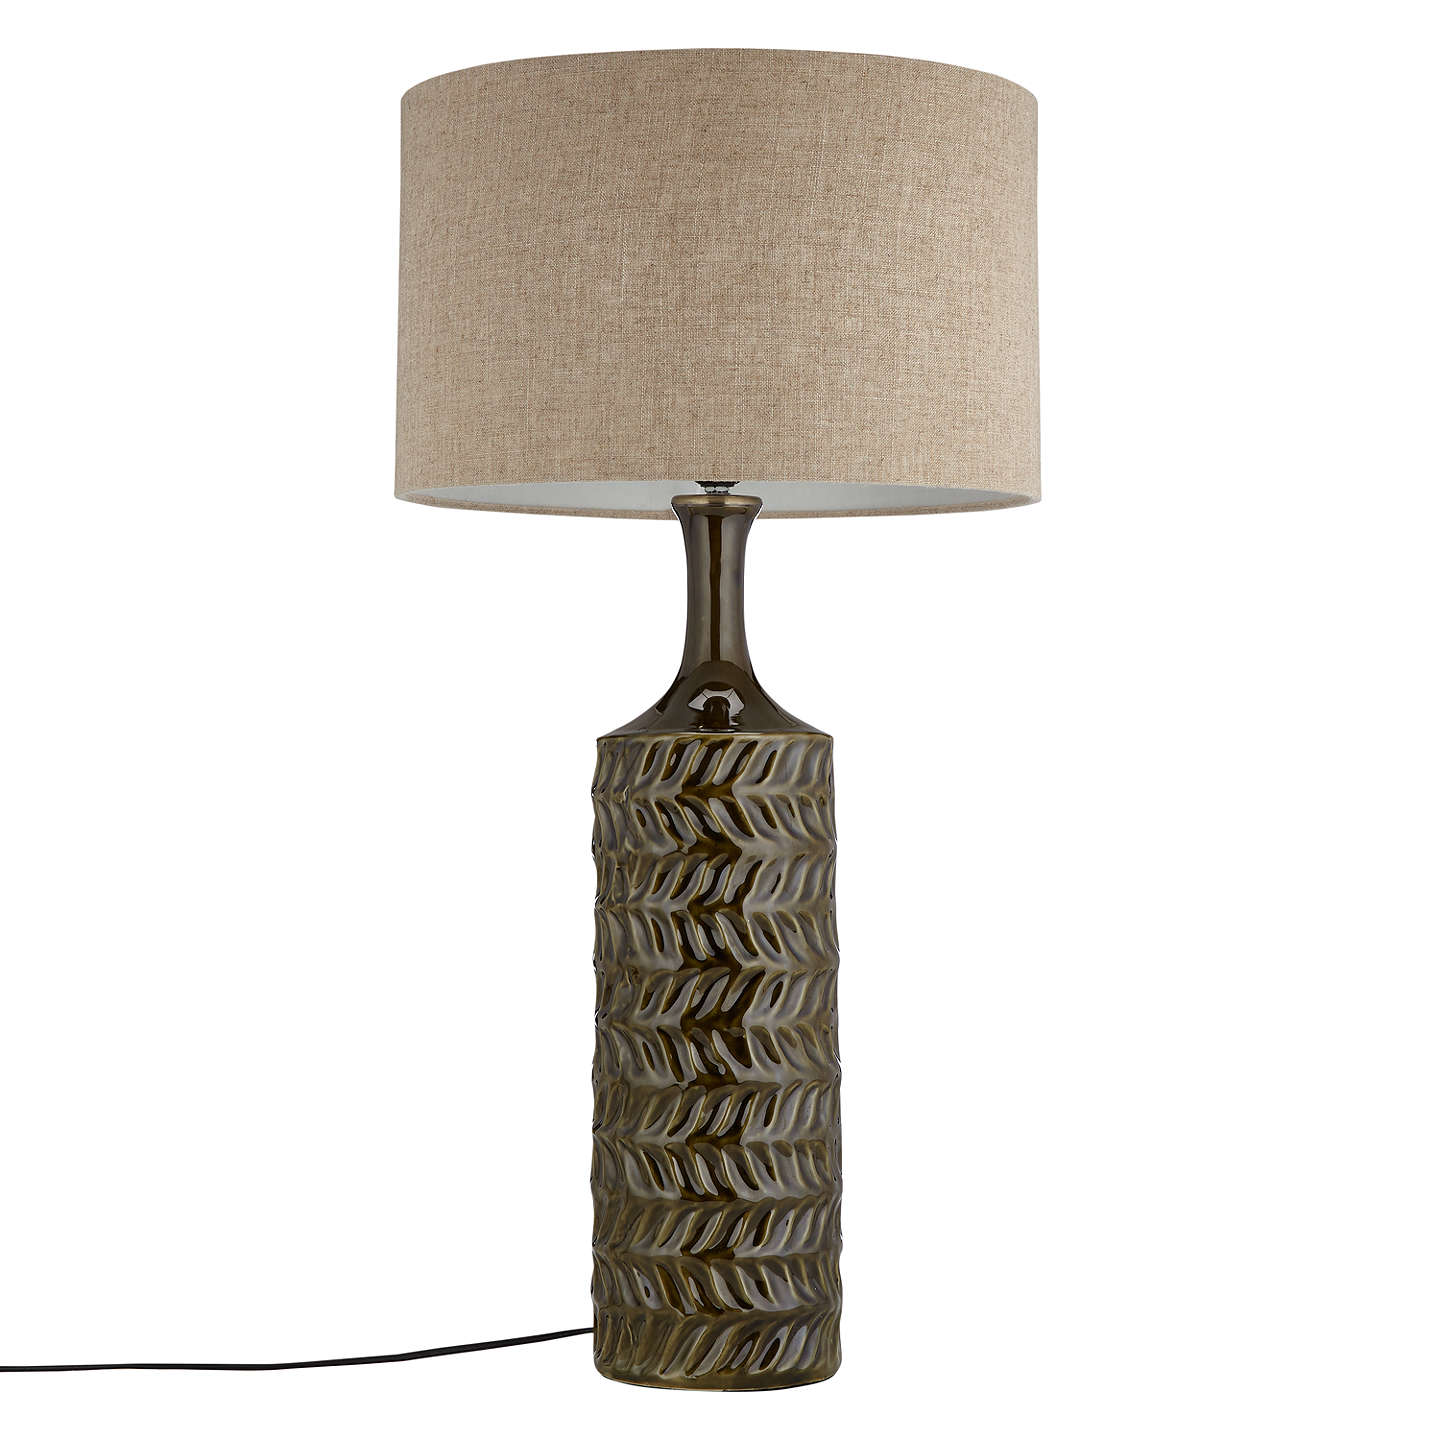 John lewis moore textured glazed table lamp green at john lewis buyjohn lewis moore textured glazed table lamp green online at johnlewis aloadofball